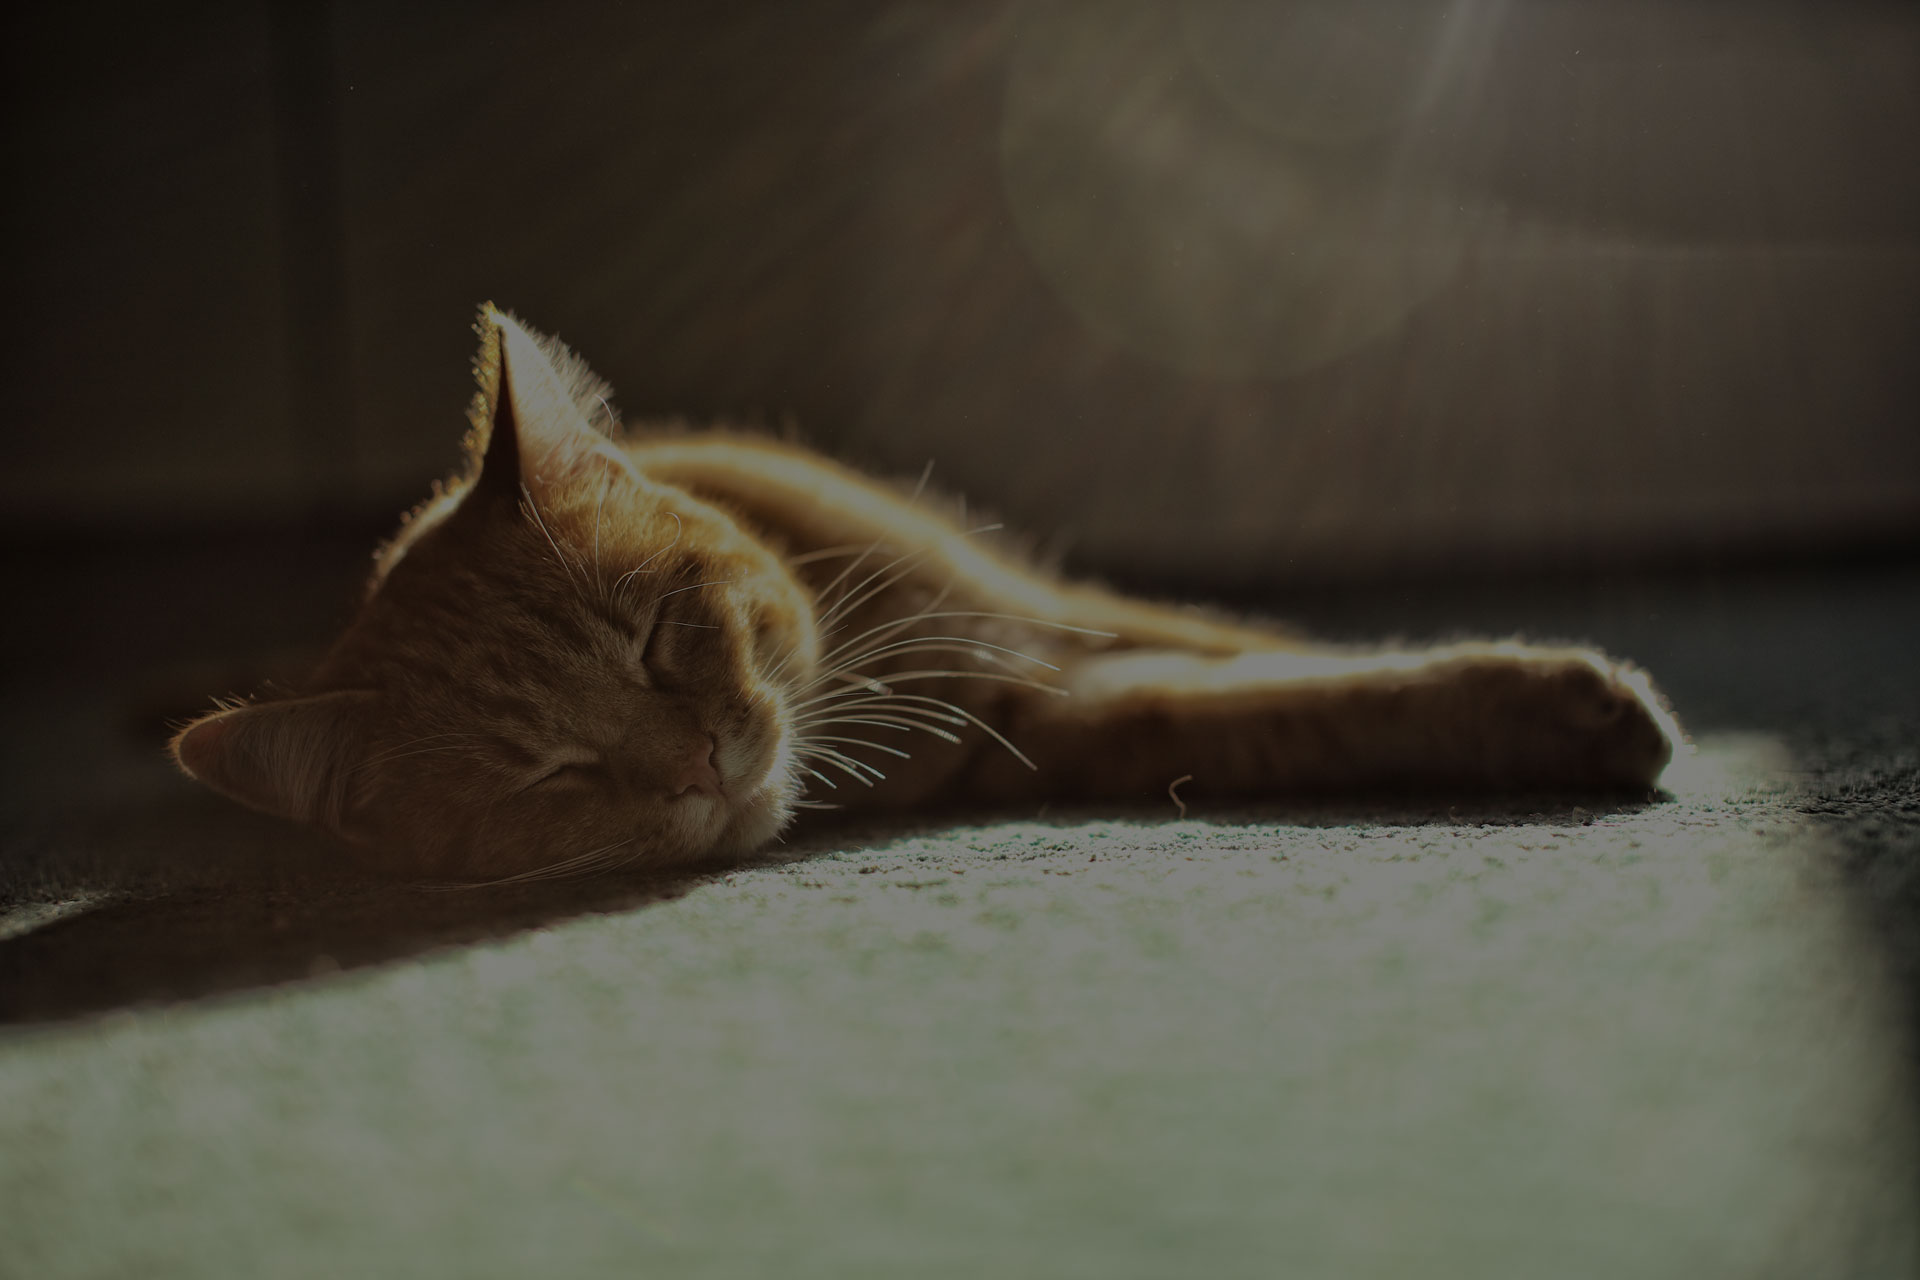 Small beige cat sleeping on greenish carpet with sun beams above